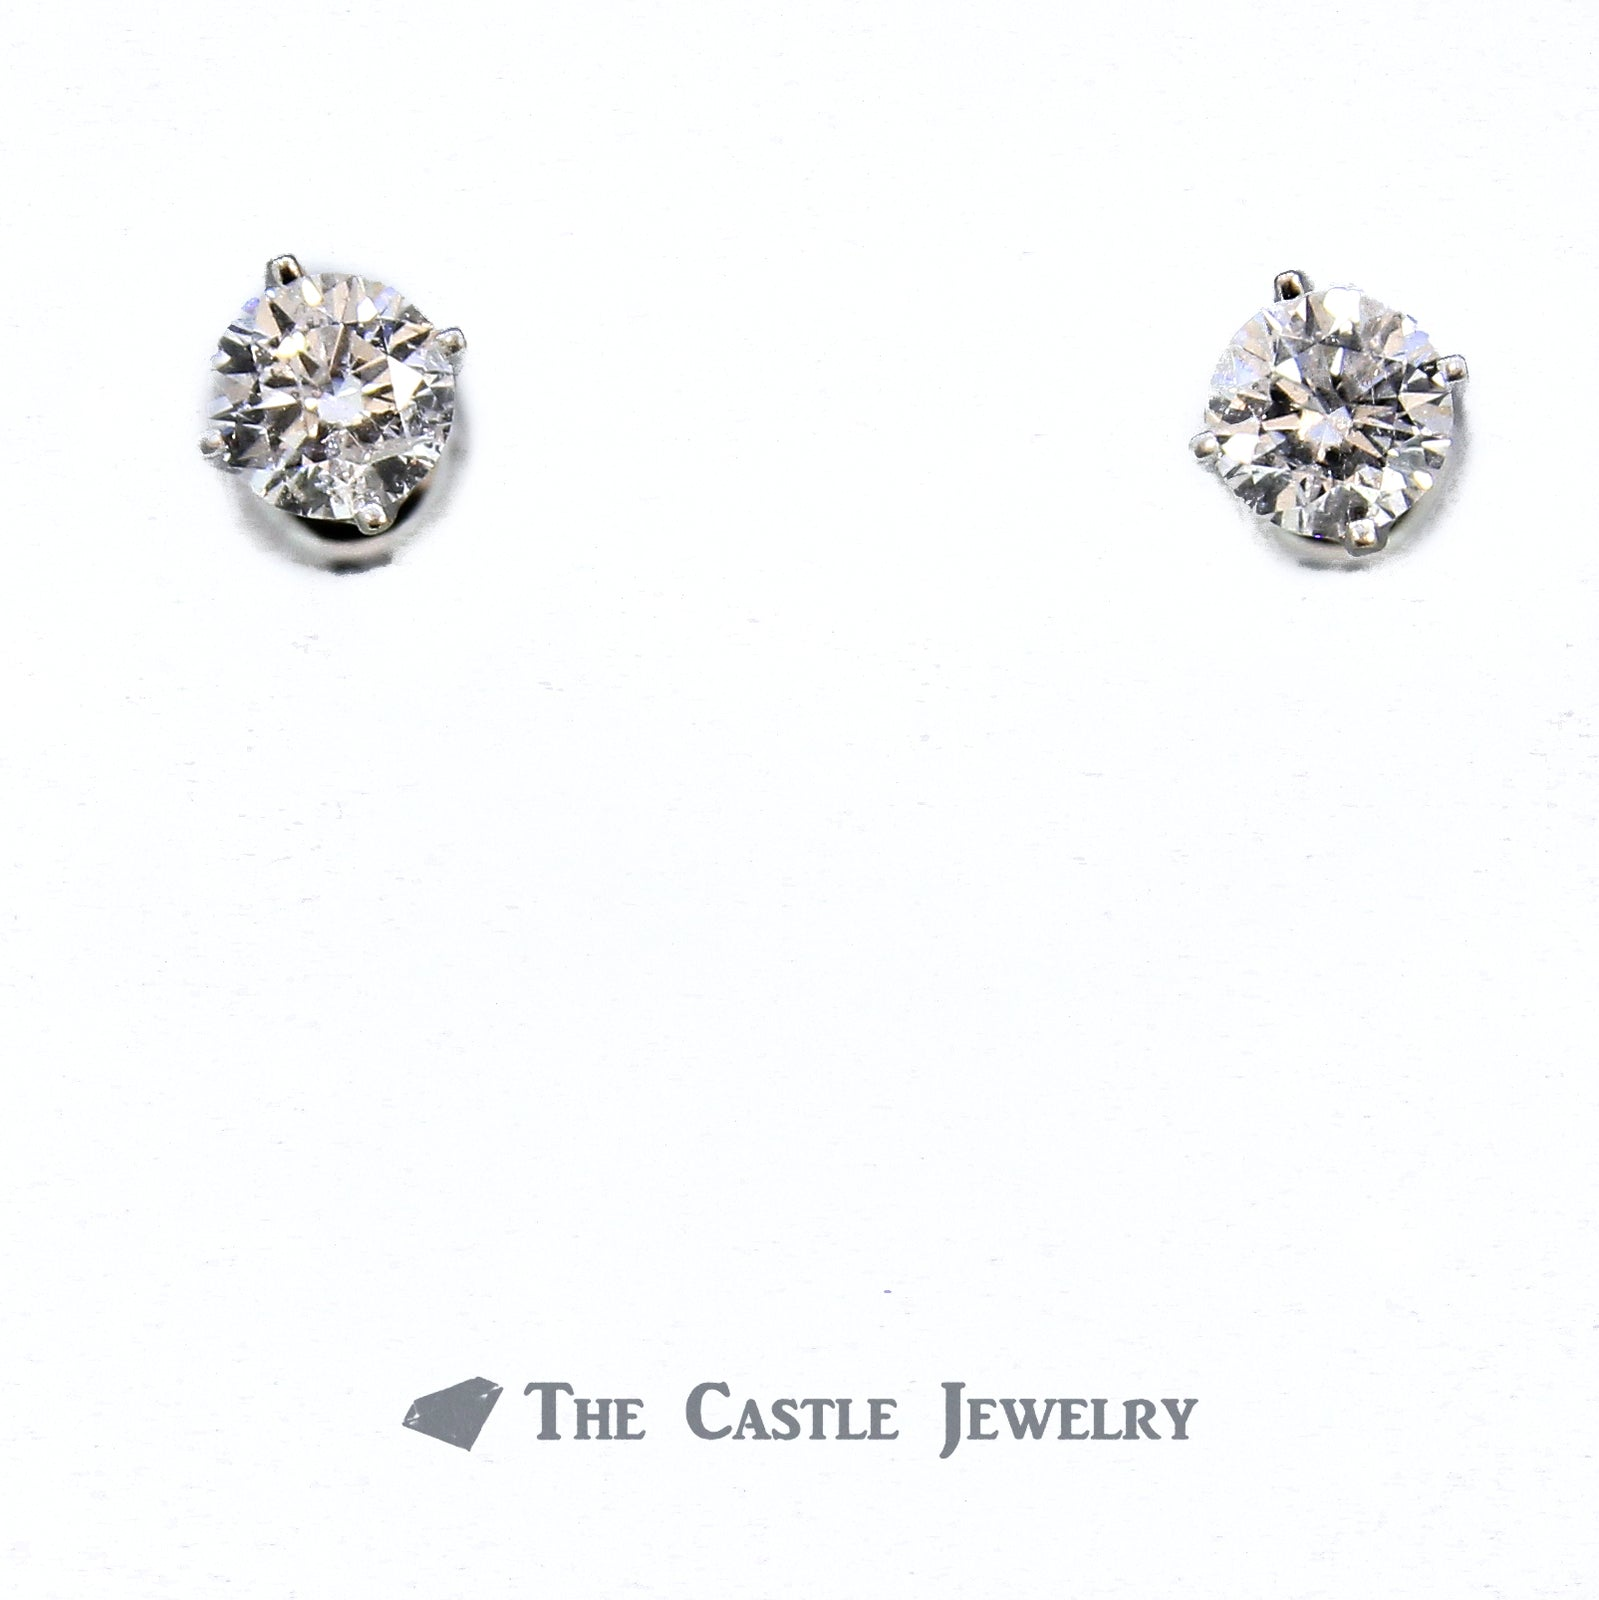 1.50cttw Round Brilliant Cut Diamond Stud Earrings in 14K White Gold